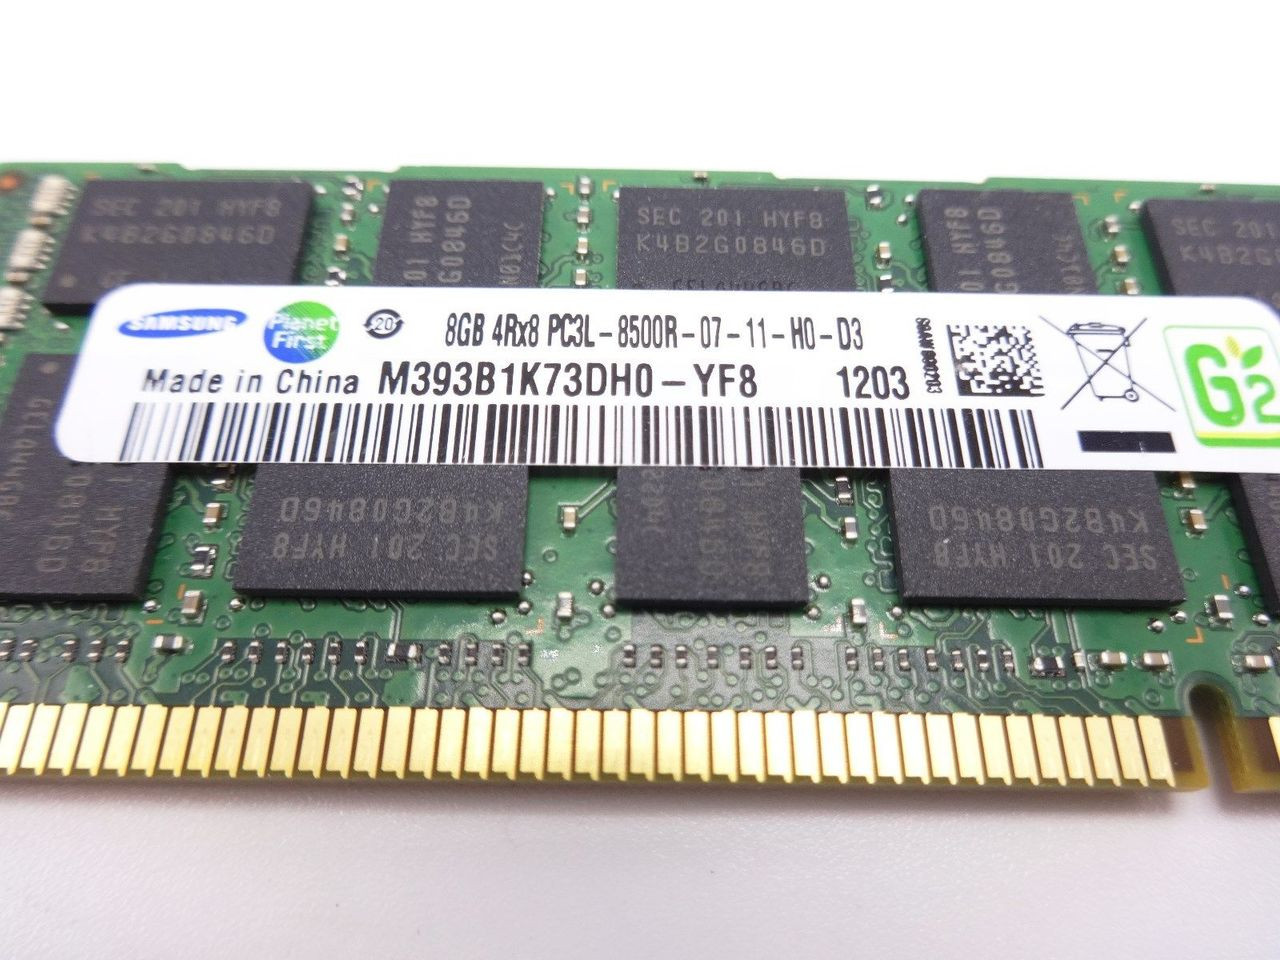 Samsung M393B1K73DH0-YF8 8GB PC3L 8500R 4RX8 memory dimm ***Server memory only**